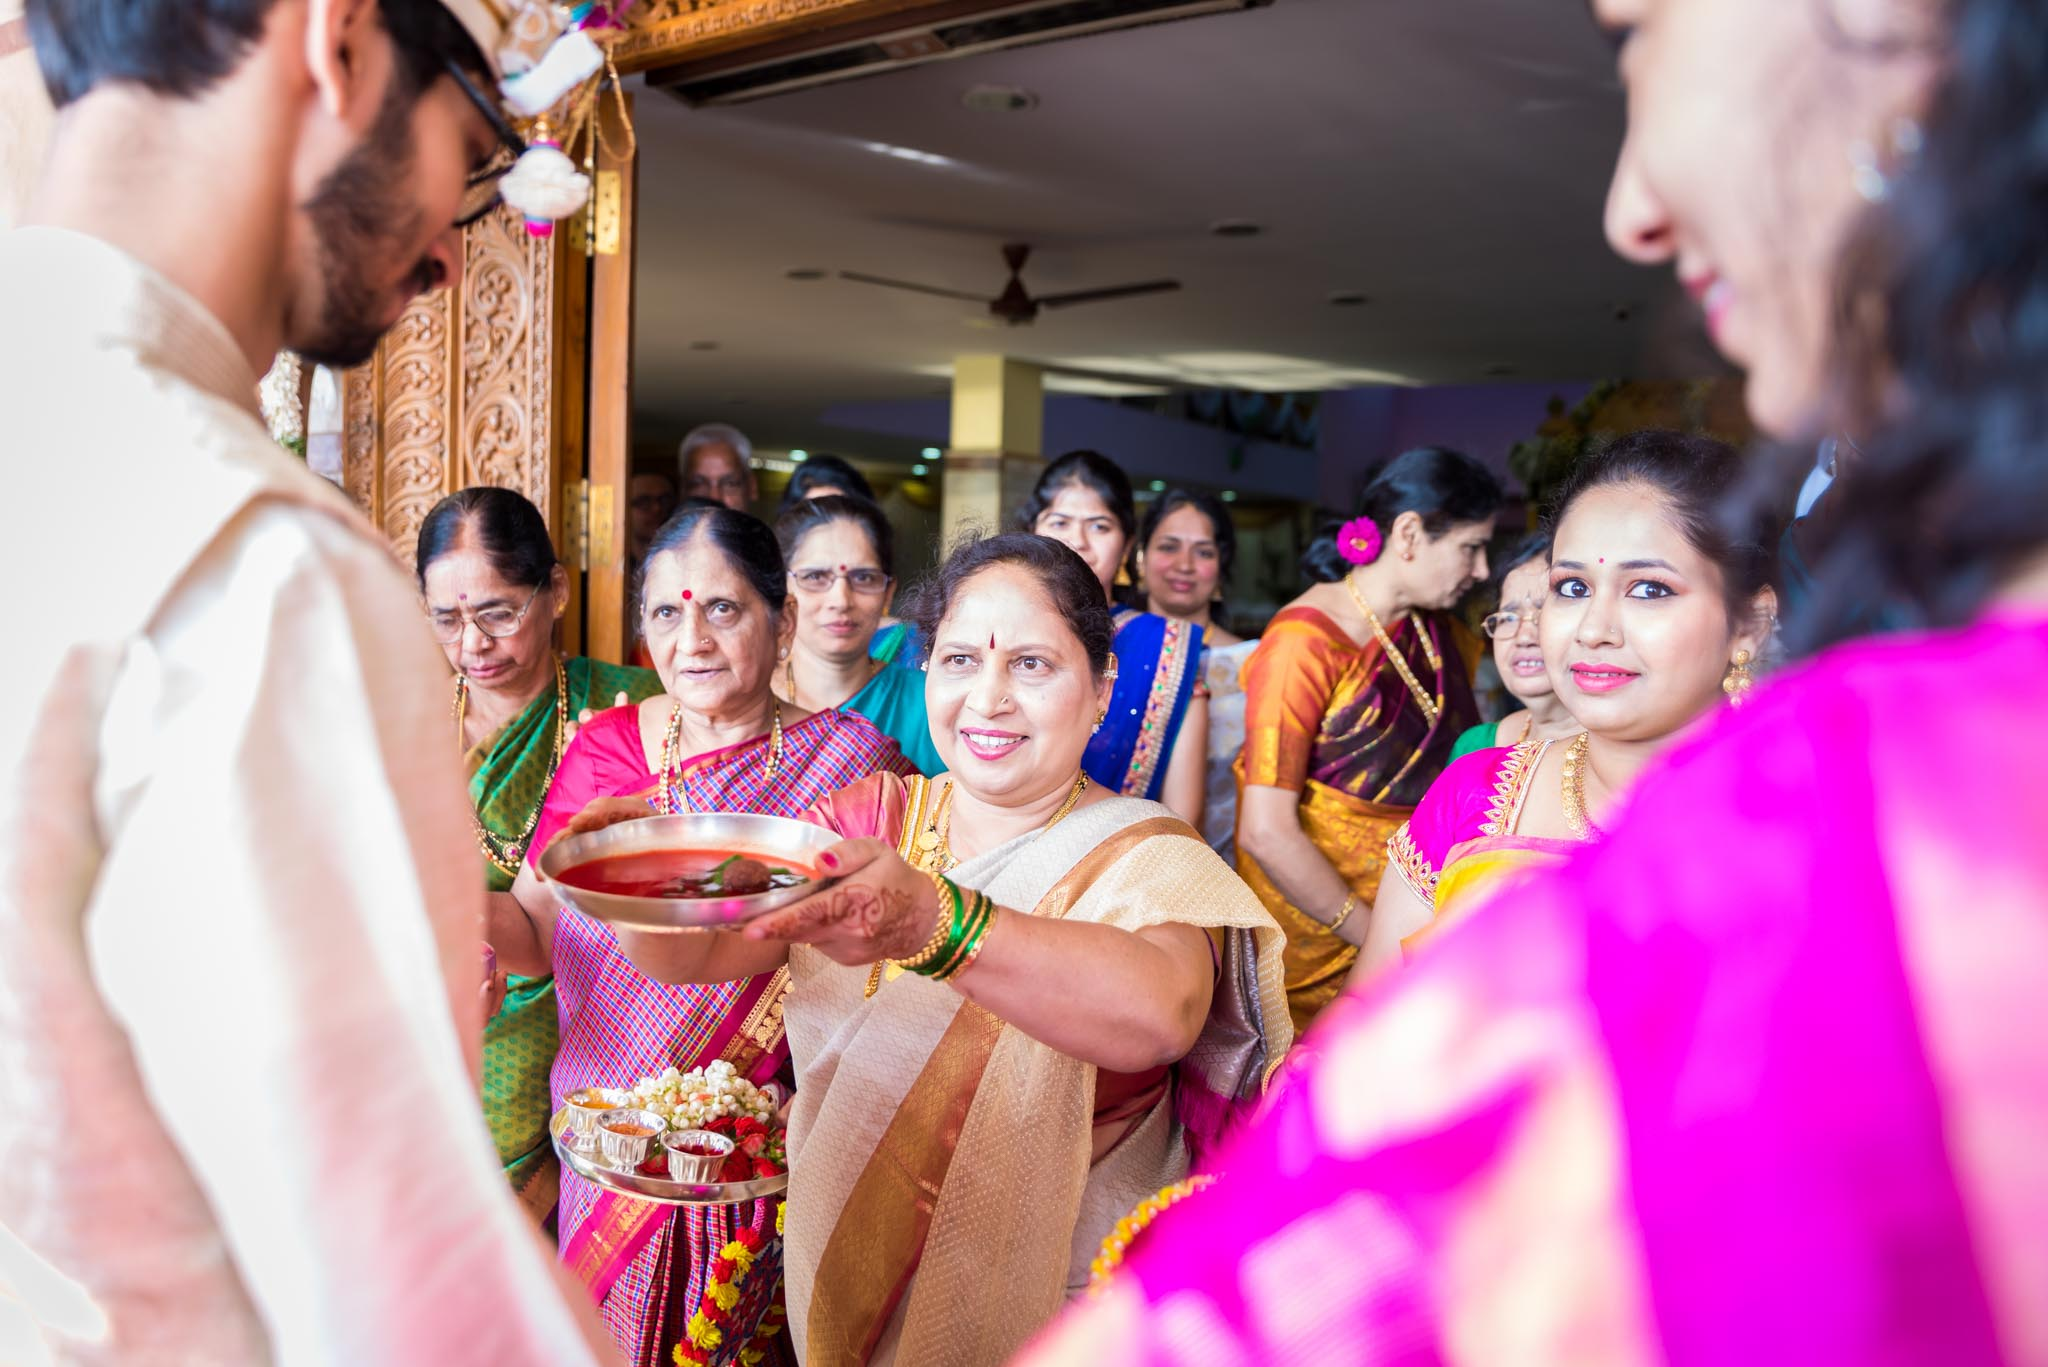 WhatKnot-Candid-Wedding-Photography-Mumbai-Bangalore-128